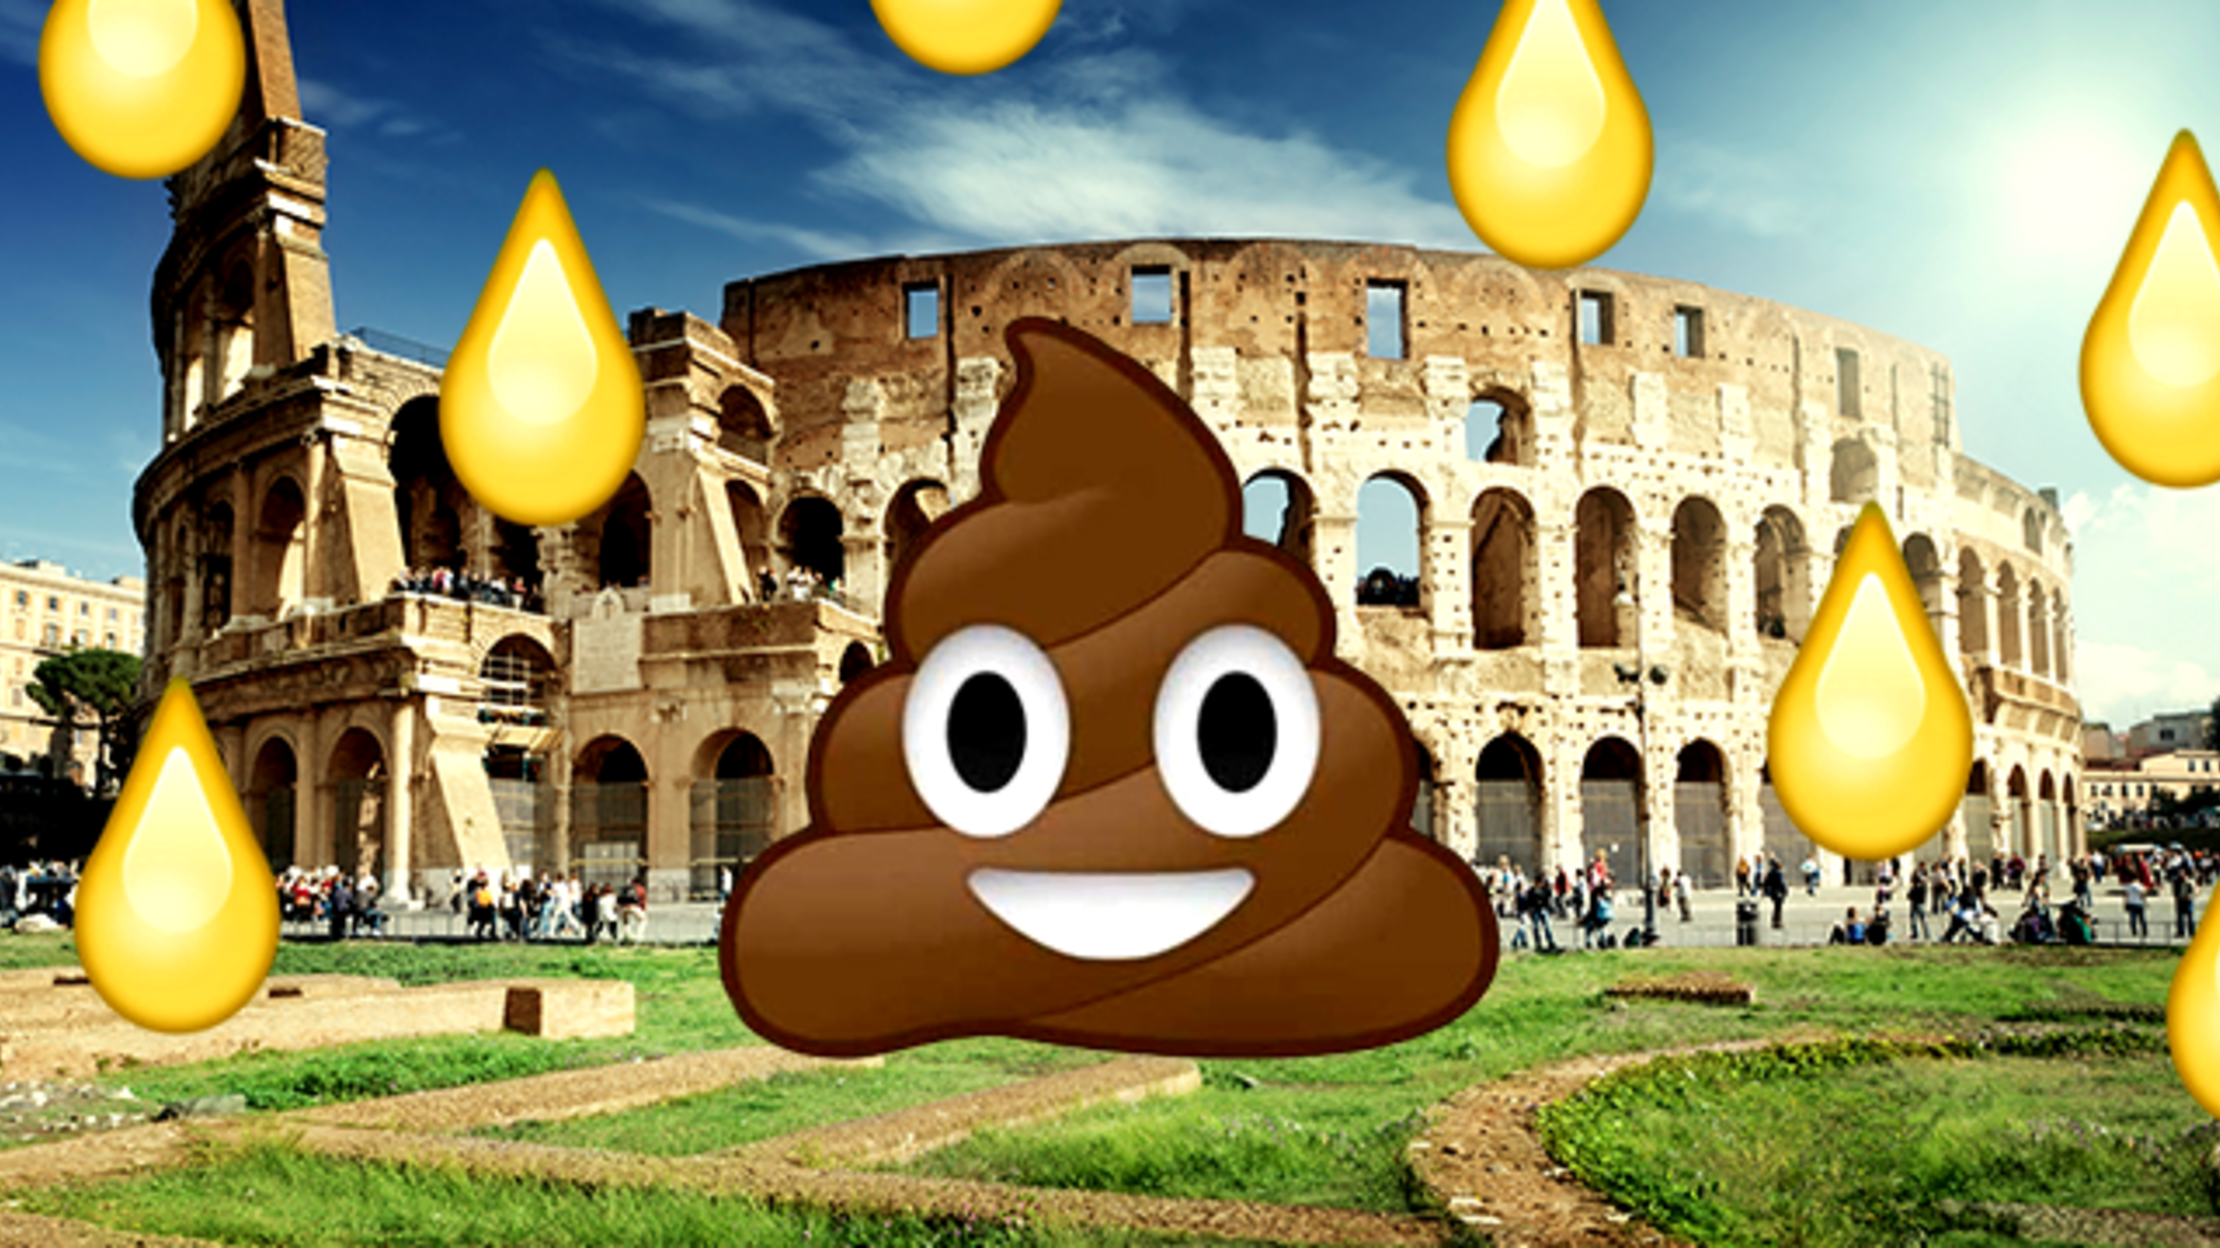 6 Practical Ways Romans Used Human Urine and Feces in Daily Life